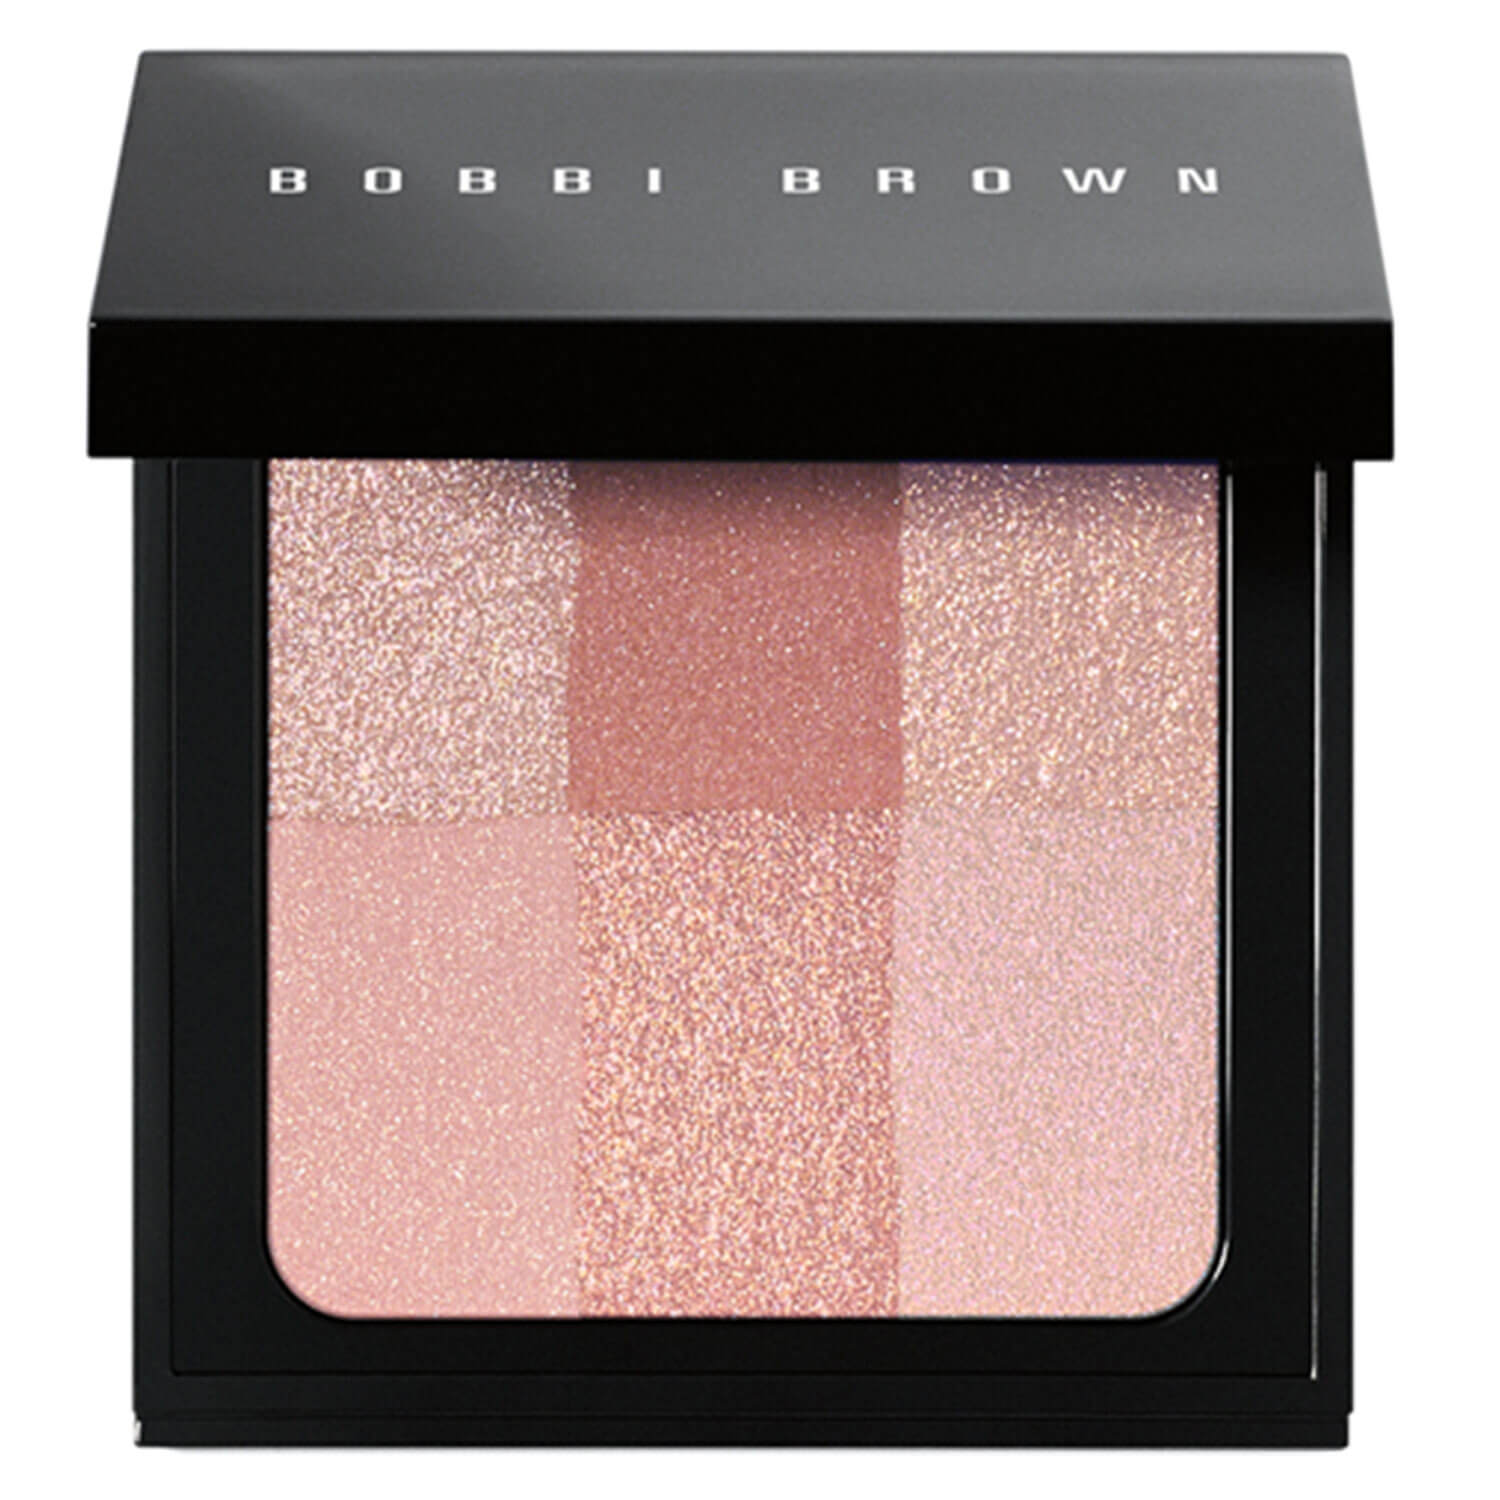 BB Blush - Brightening Brick Pink